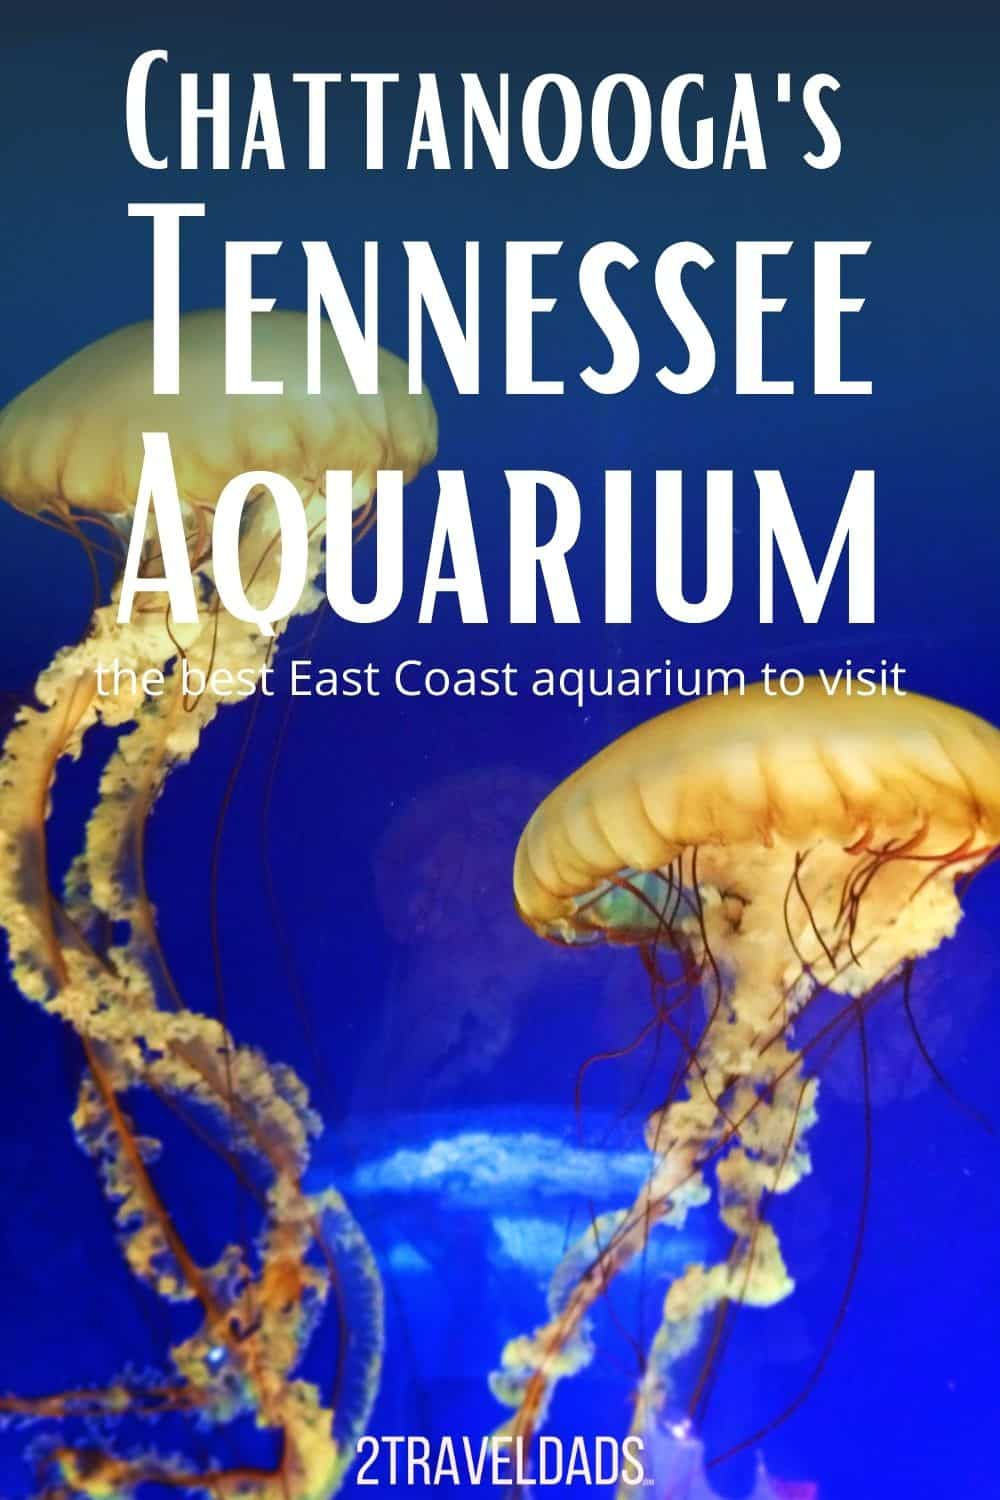 The Tennessee Aquarium in Chattanooga is the best zoo/aquarium on the East Coast. Tips for visiting with kids, special exhibits and more